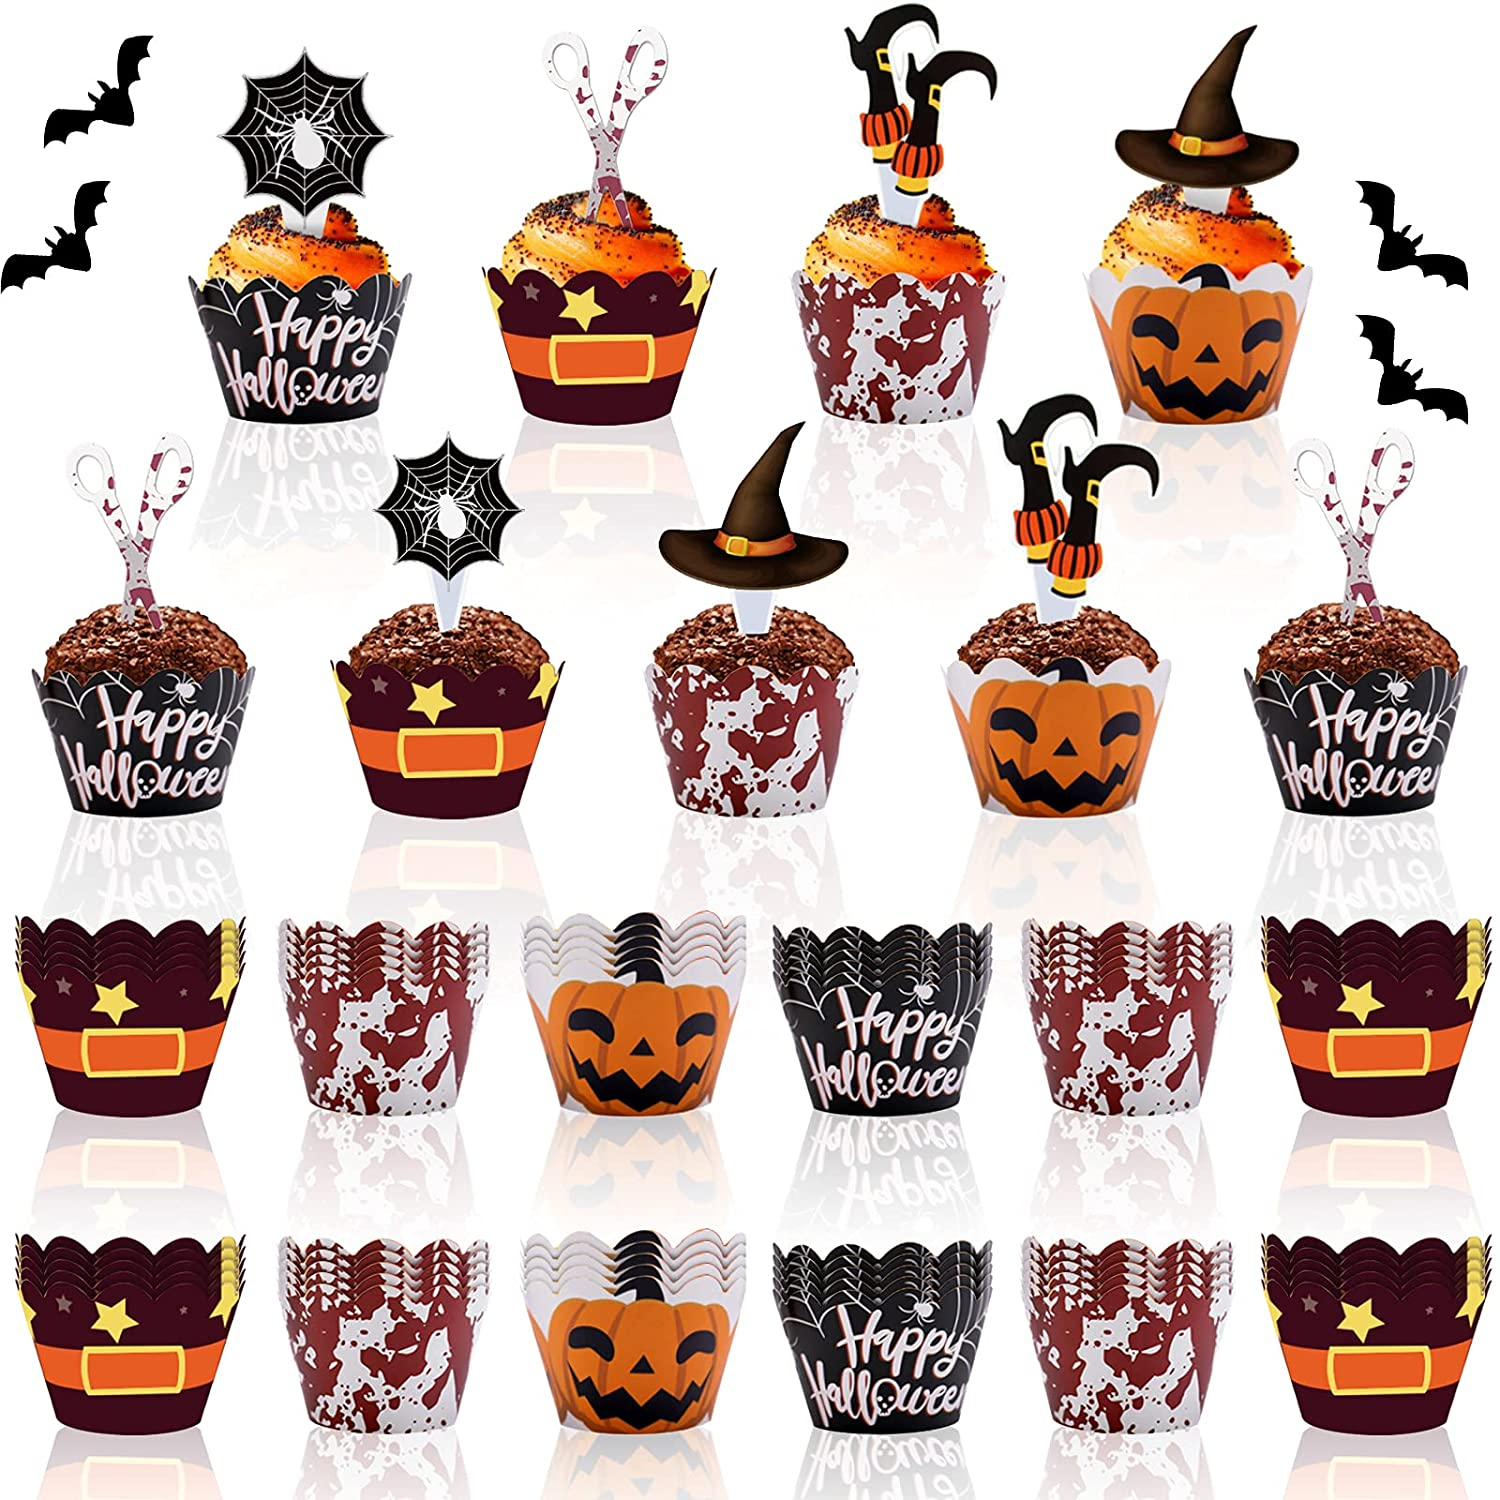 BigOtters 96PCS Halloween Cupcake Popular standard Toppers Limited price Pumpkin Spid Wrappers